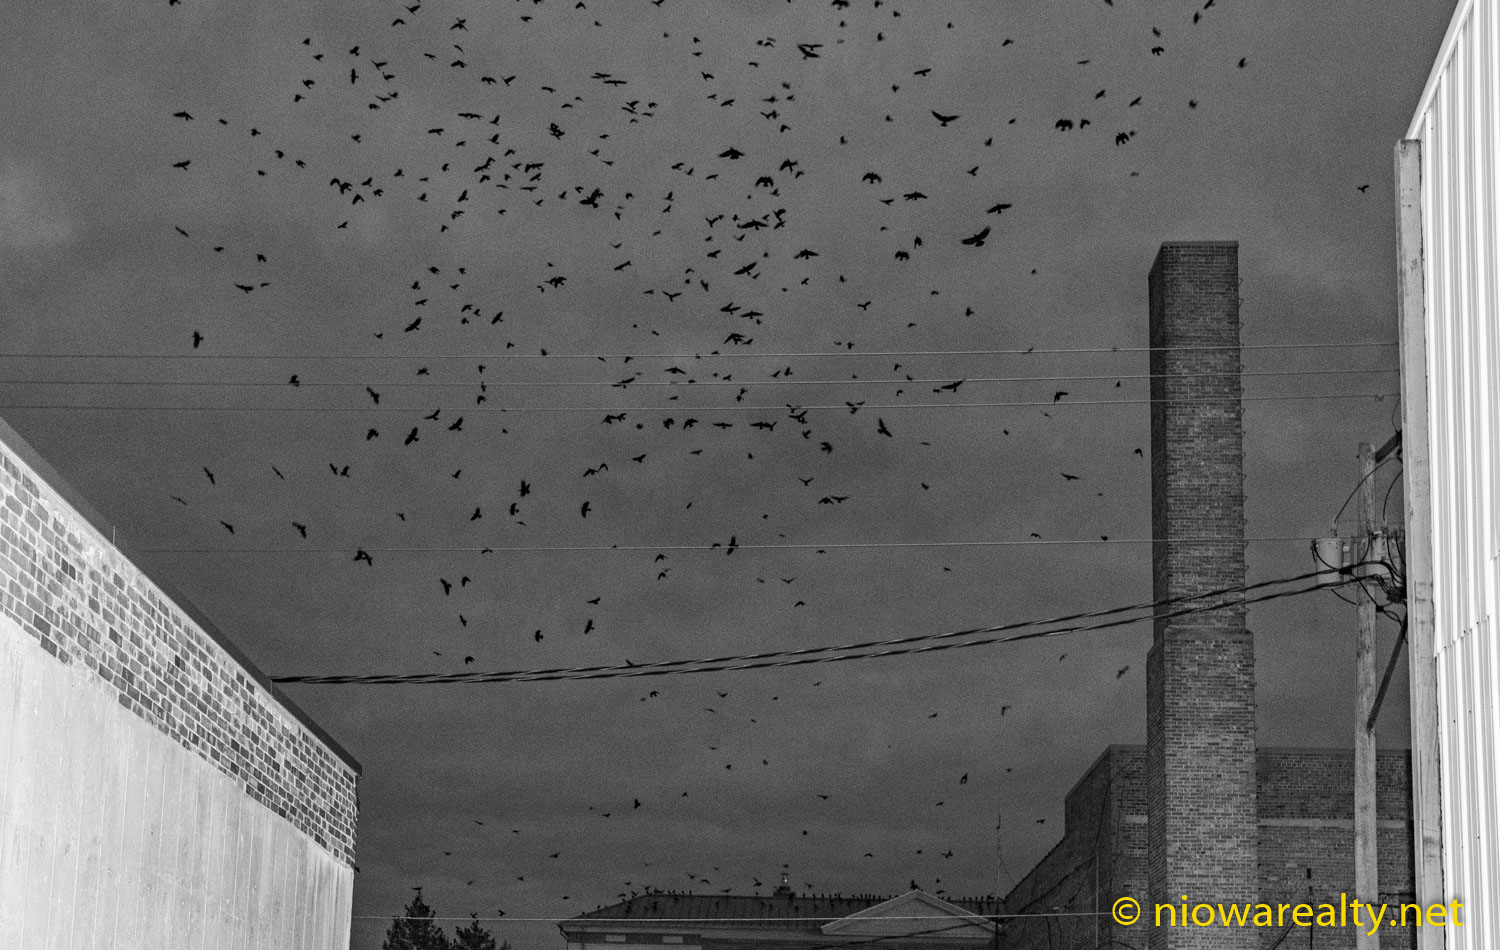 The Return of the Crows